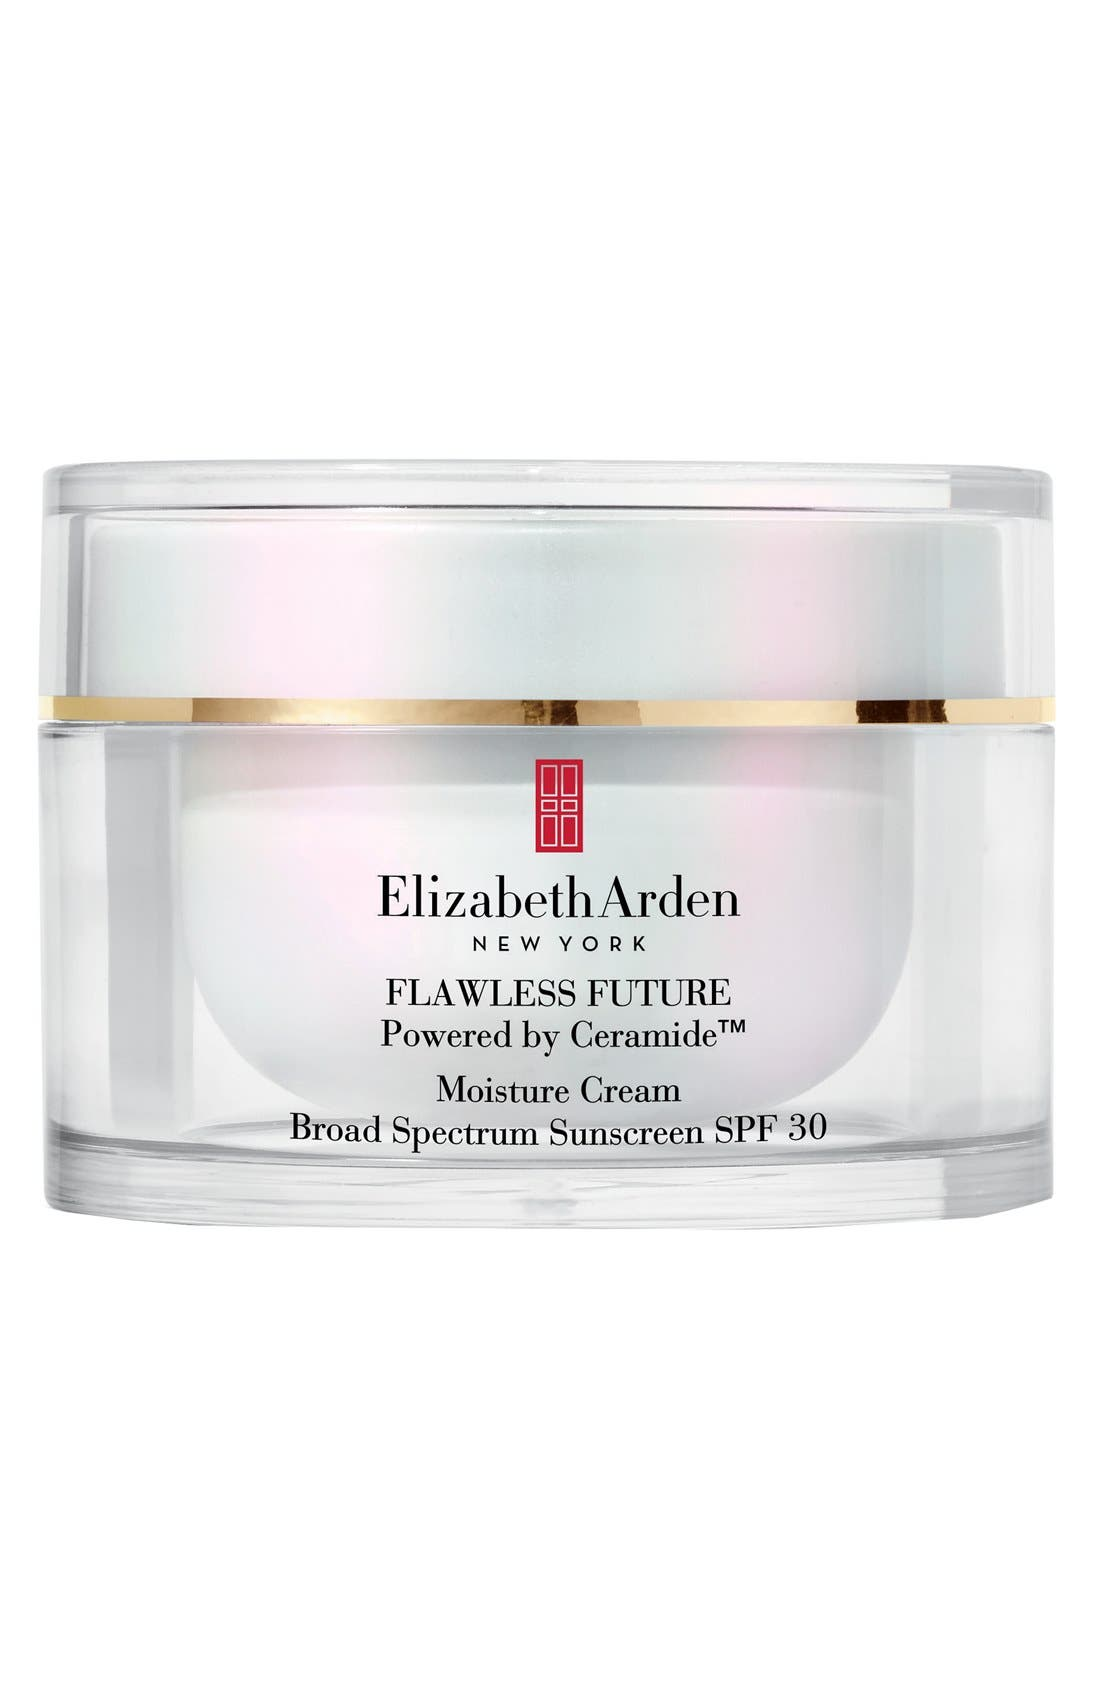 FLAWLESS FUTURE Powered by Ceramide<sup>™</sup> Moisture Cream Broad Spectrum Sunscreen SPF 30,                             Main thumbnail 1, color,                             NO COLOR